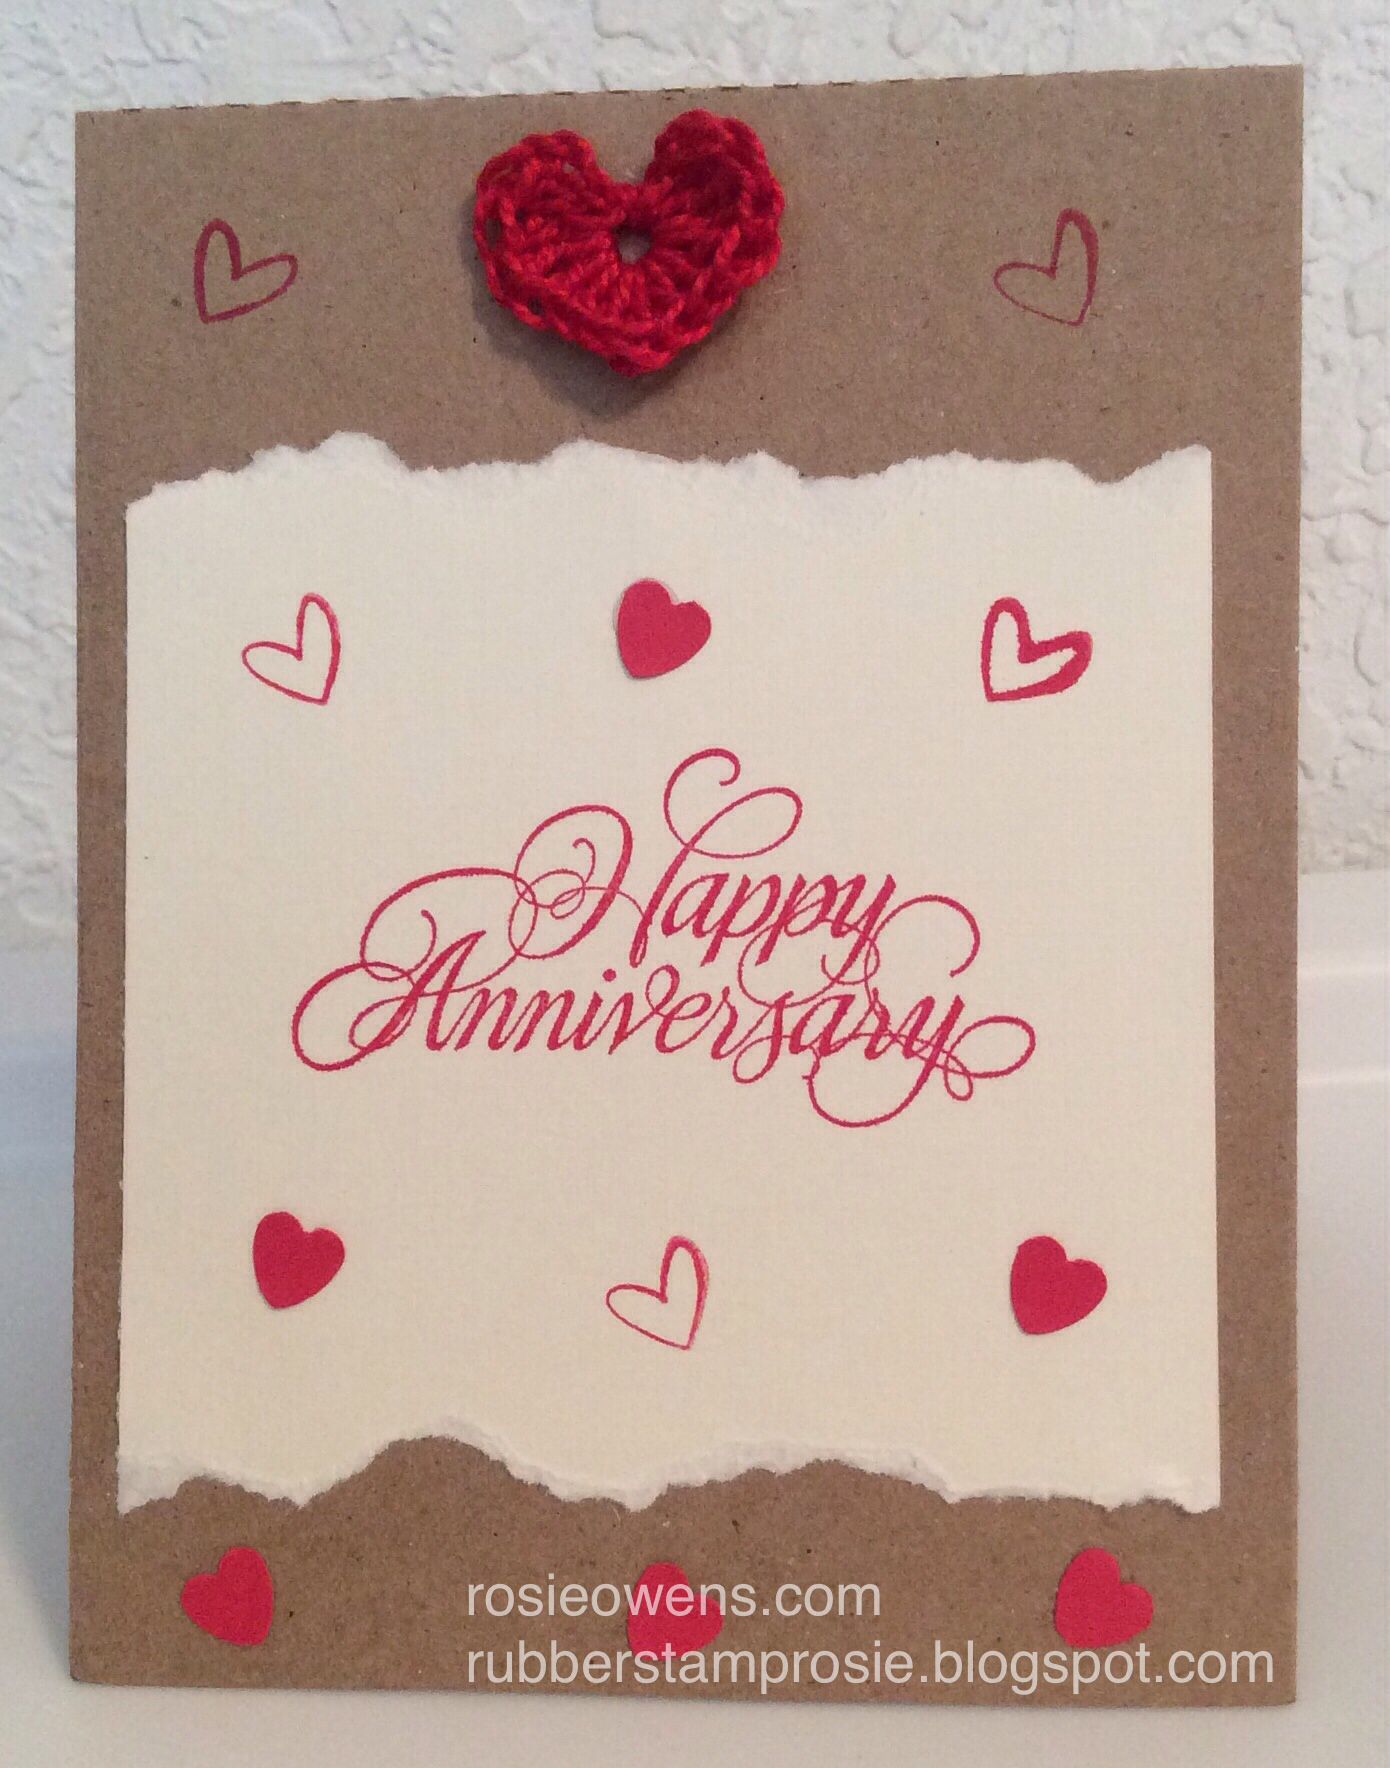 Anniversary Card Crochet Heart Made With Craft Thread Punch Out Tiny Hearts Acrylic Heart Stamp Ha Card Factory Anniversary Cards Greeting Cards Handmade